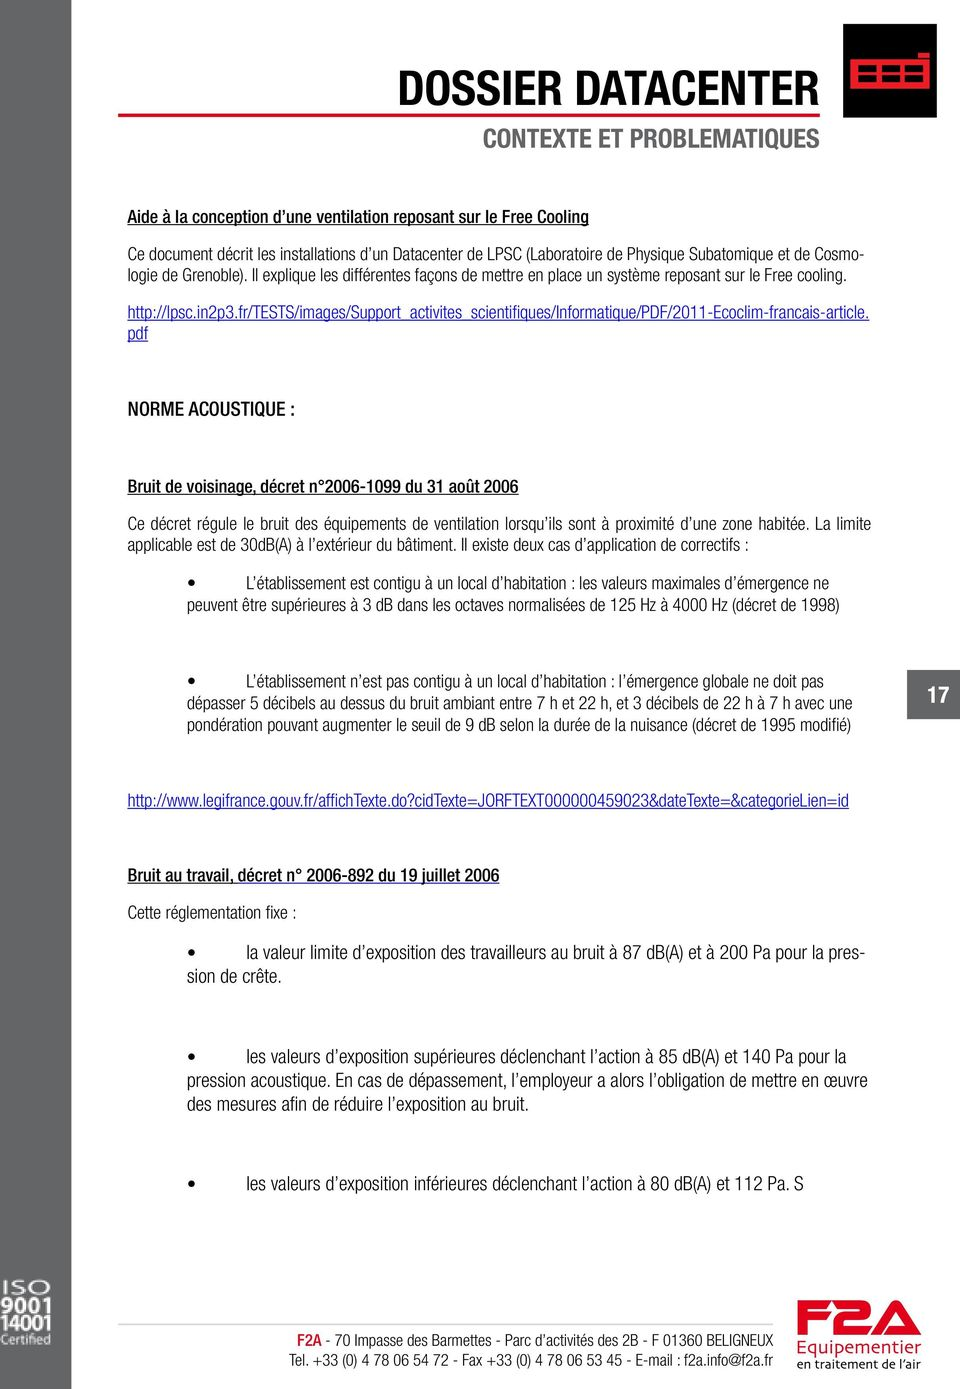 fr/tests/images/support_activites_scientifiques/informatique/pdf/2011-ecoclim-francais-article.